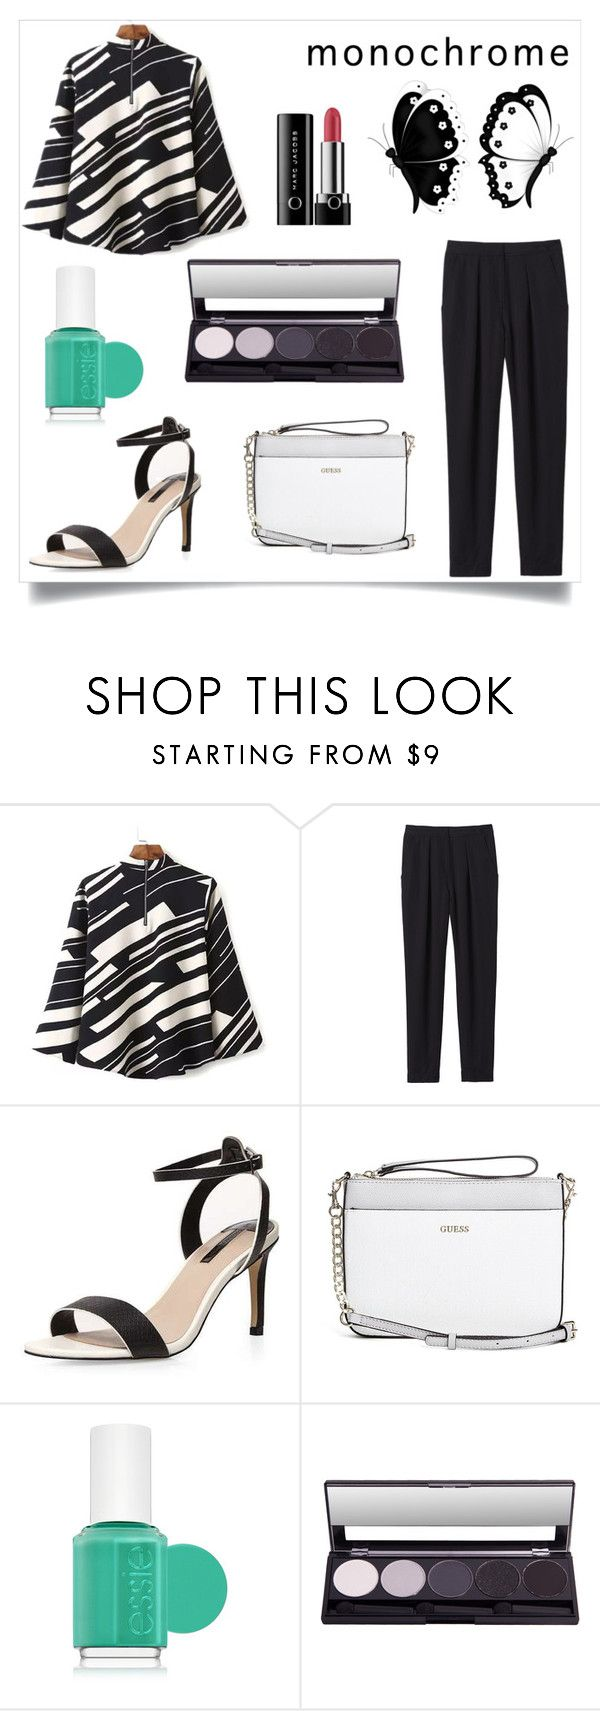 """monochrome 1"" by marvelialauraa on Polyvore featuring Rebecca Taylor, Dorothy Perkins, GUESS, Essie, Marc Jacobs and monochrome"